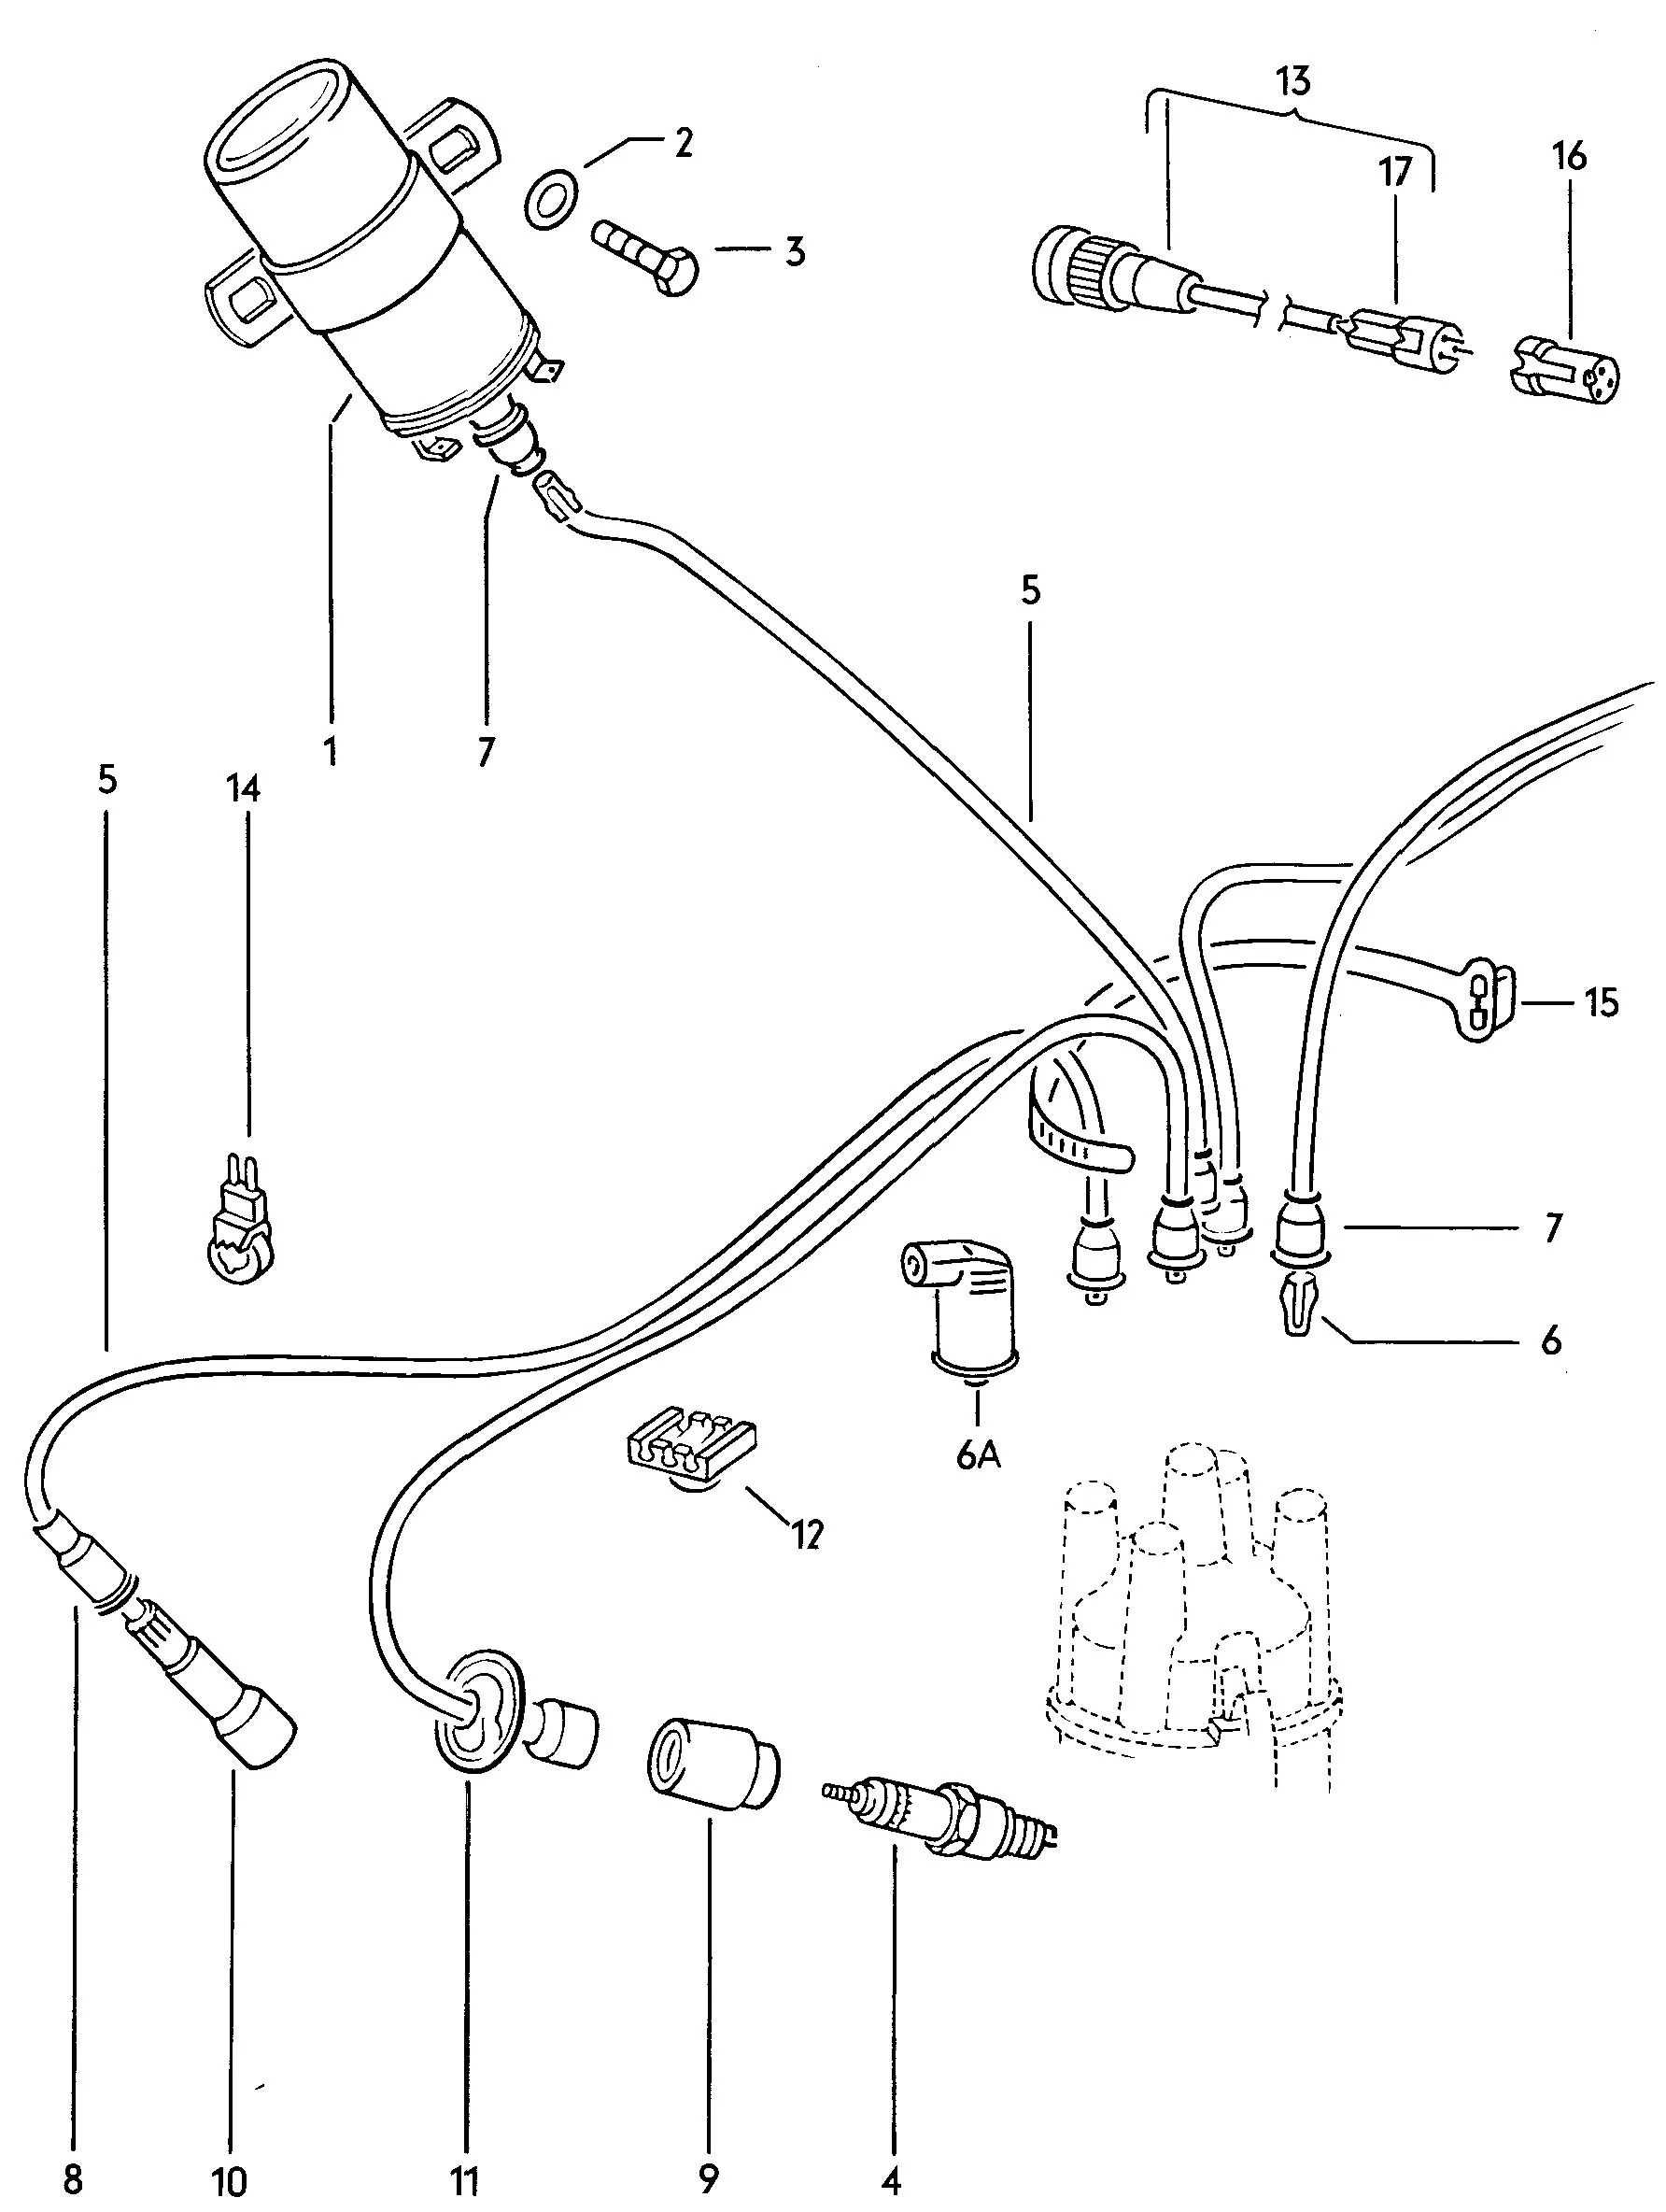 hight resolution of vw distributor coil wiring wiring diagram official vw beetle ignition coil wiring vw beetle ignition coil wiring